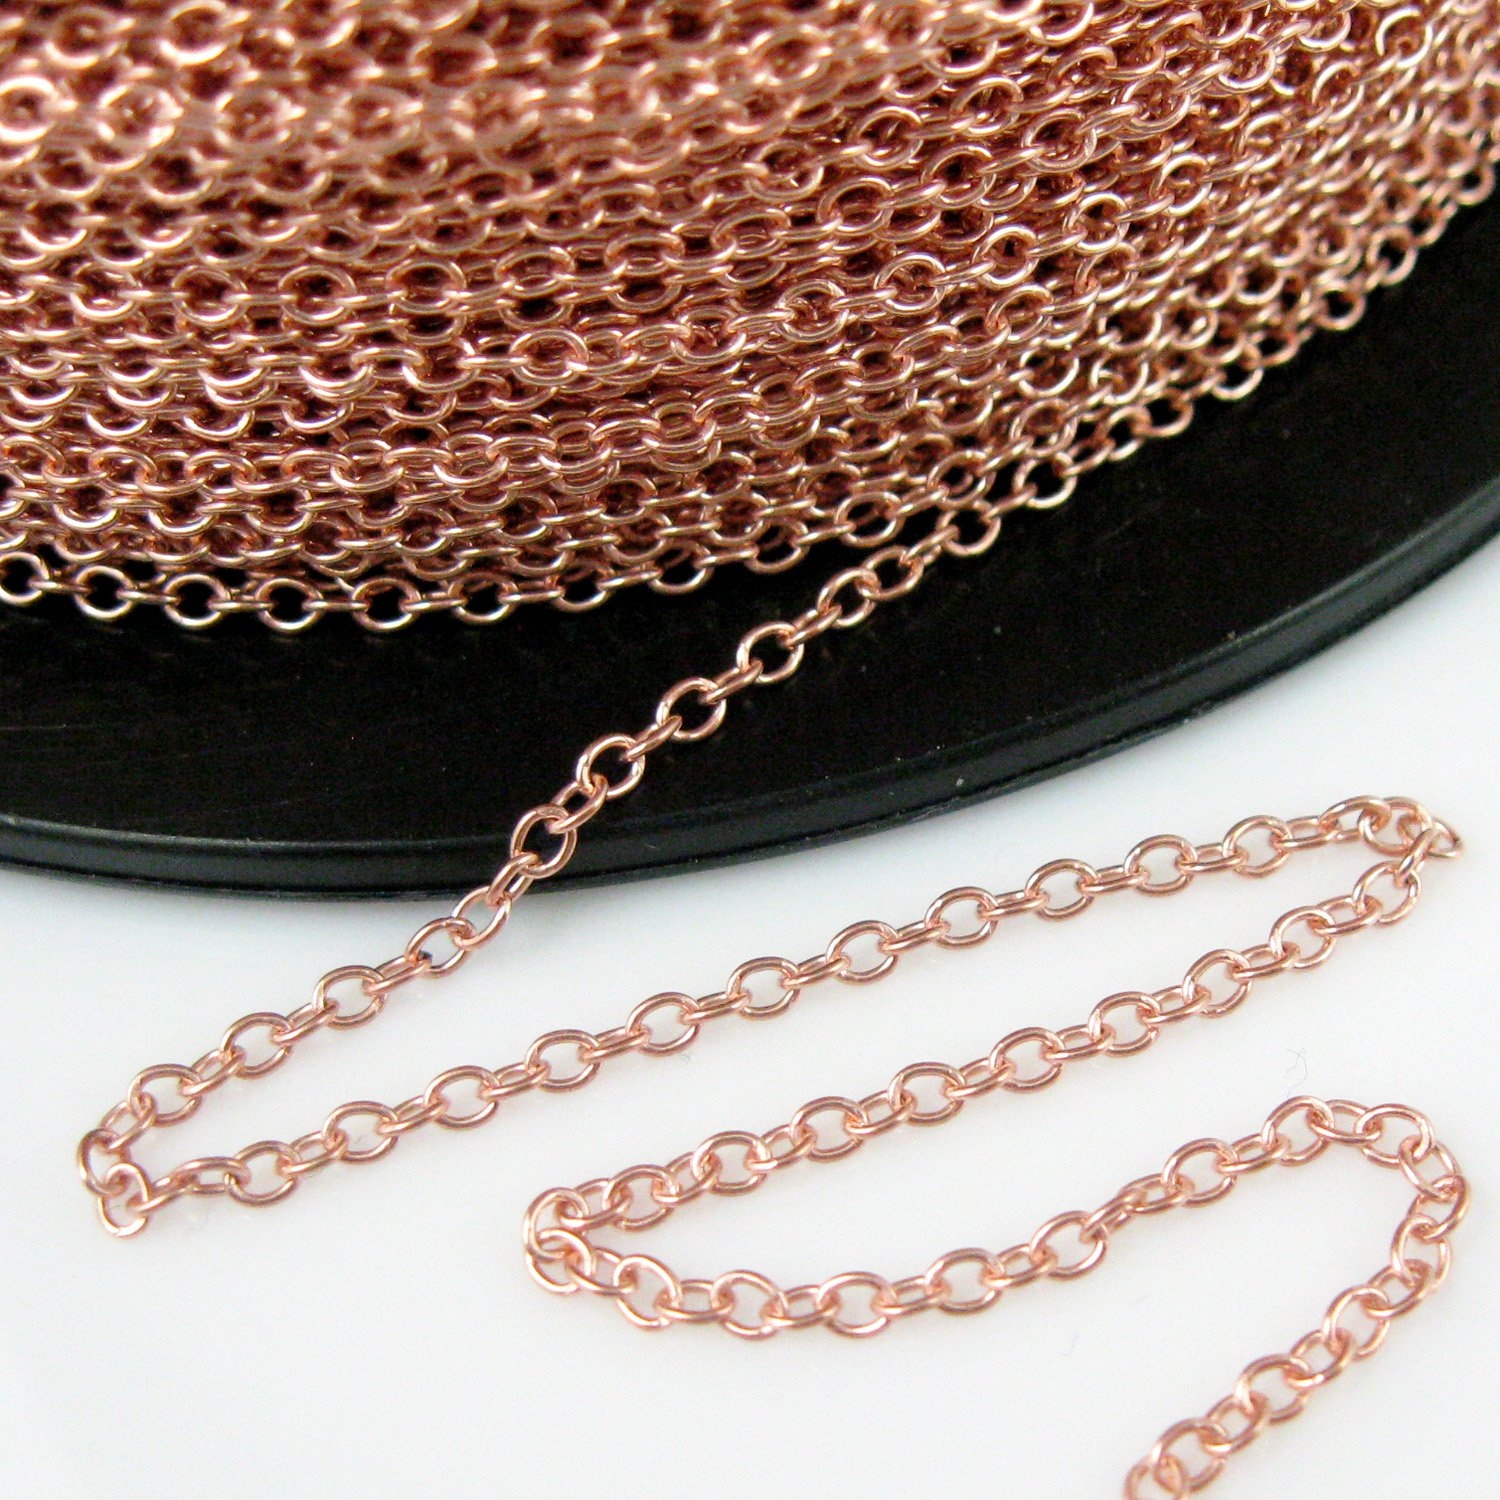 Rose Gold plated 925 Sterling Silver Chain - Strong Cable Chain - Unfinished Bulk Chain - 2mm (3 feet) Beadunion